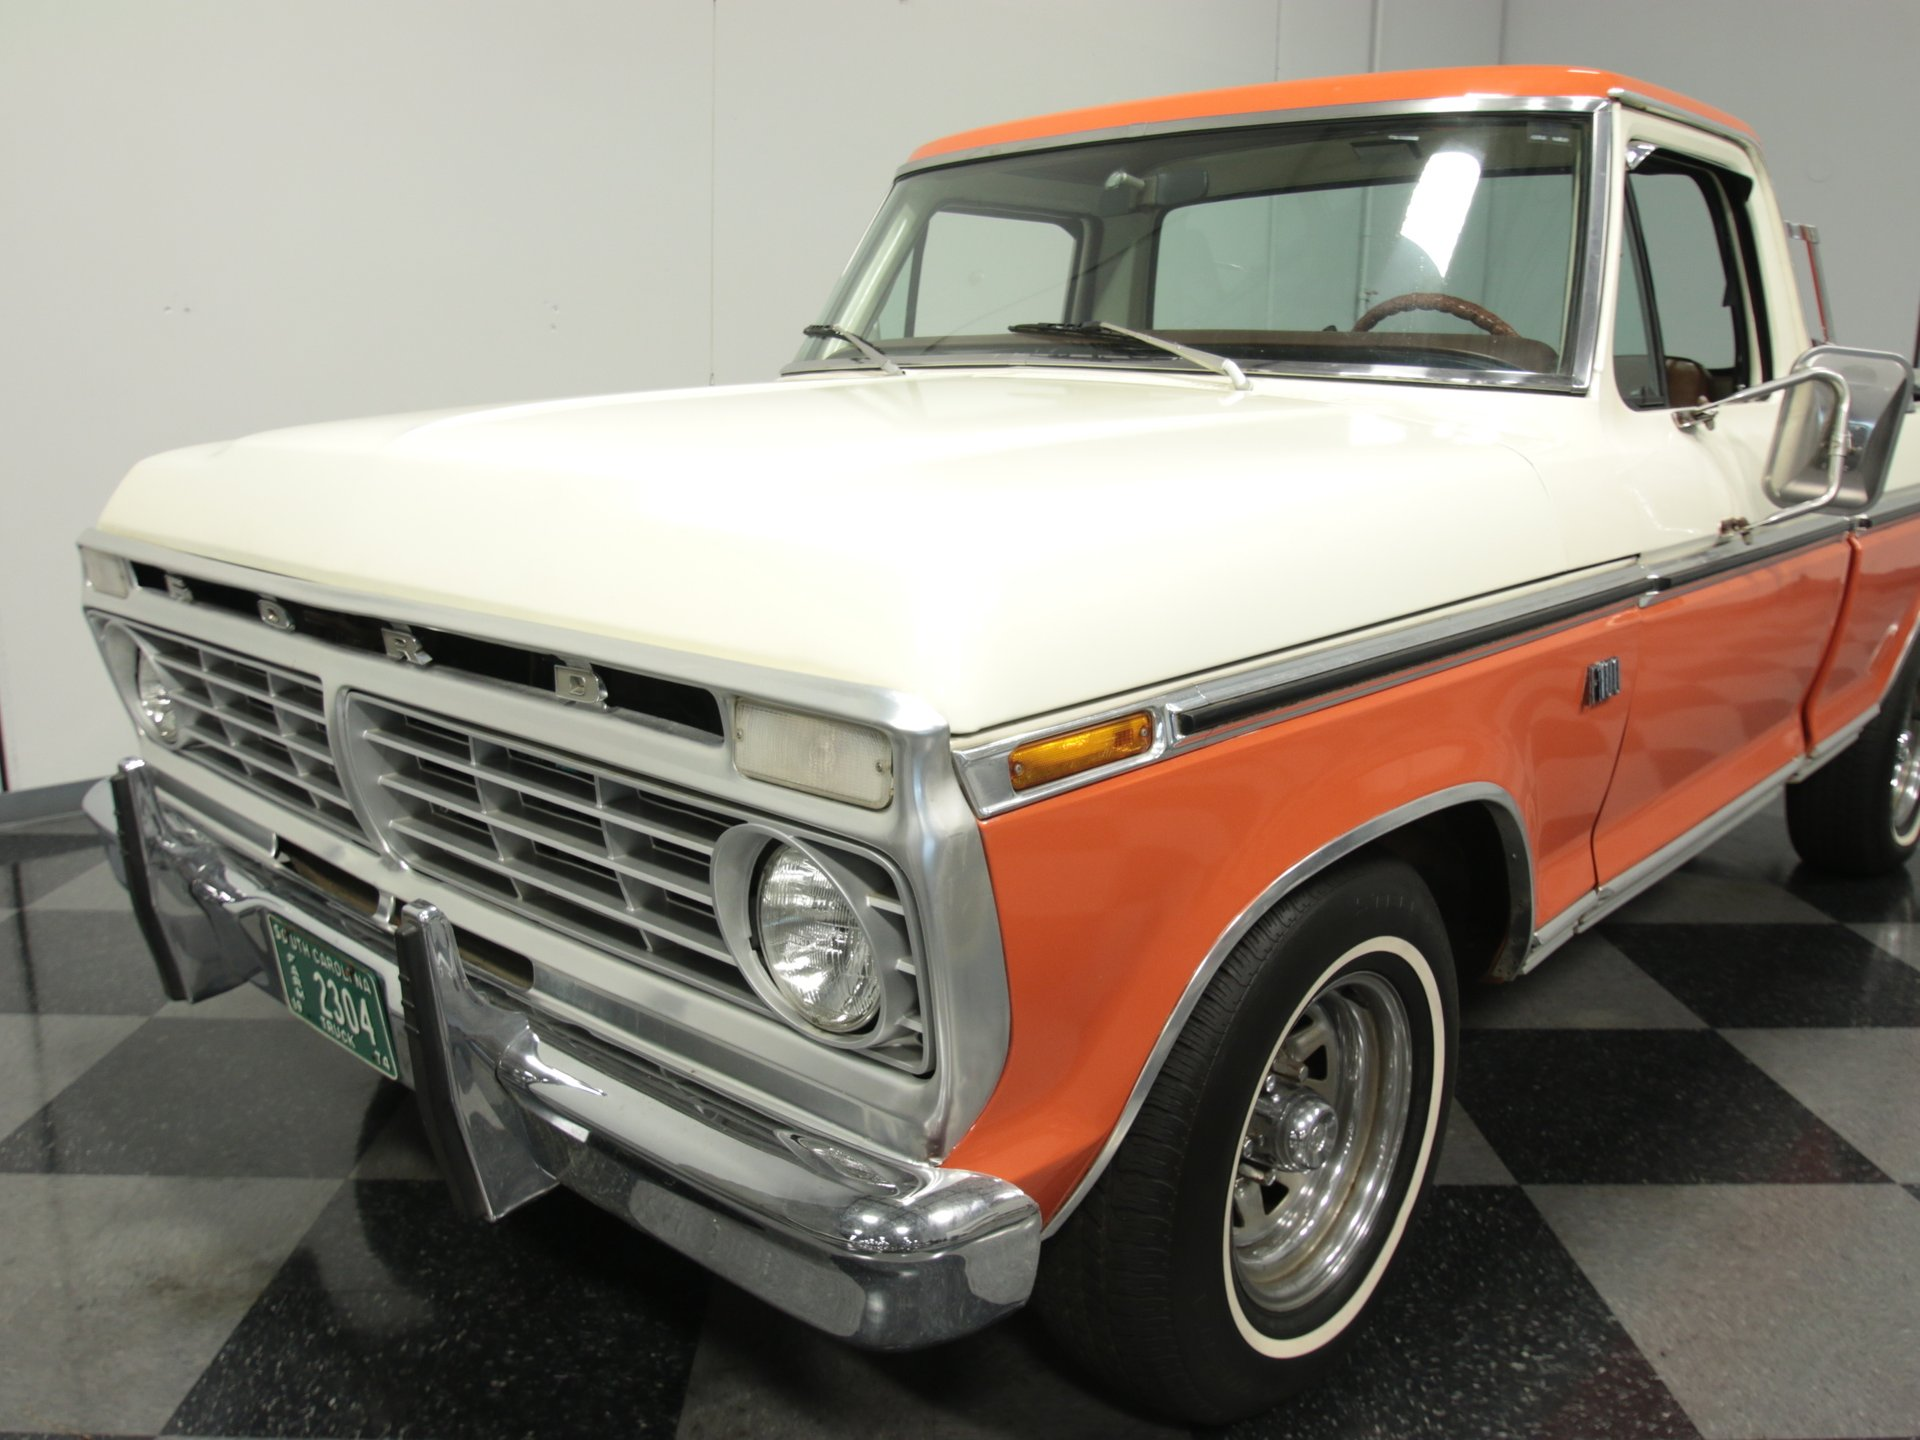 1974 Ford F-100 | Streetside Classics - The Nation's Trusted